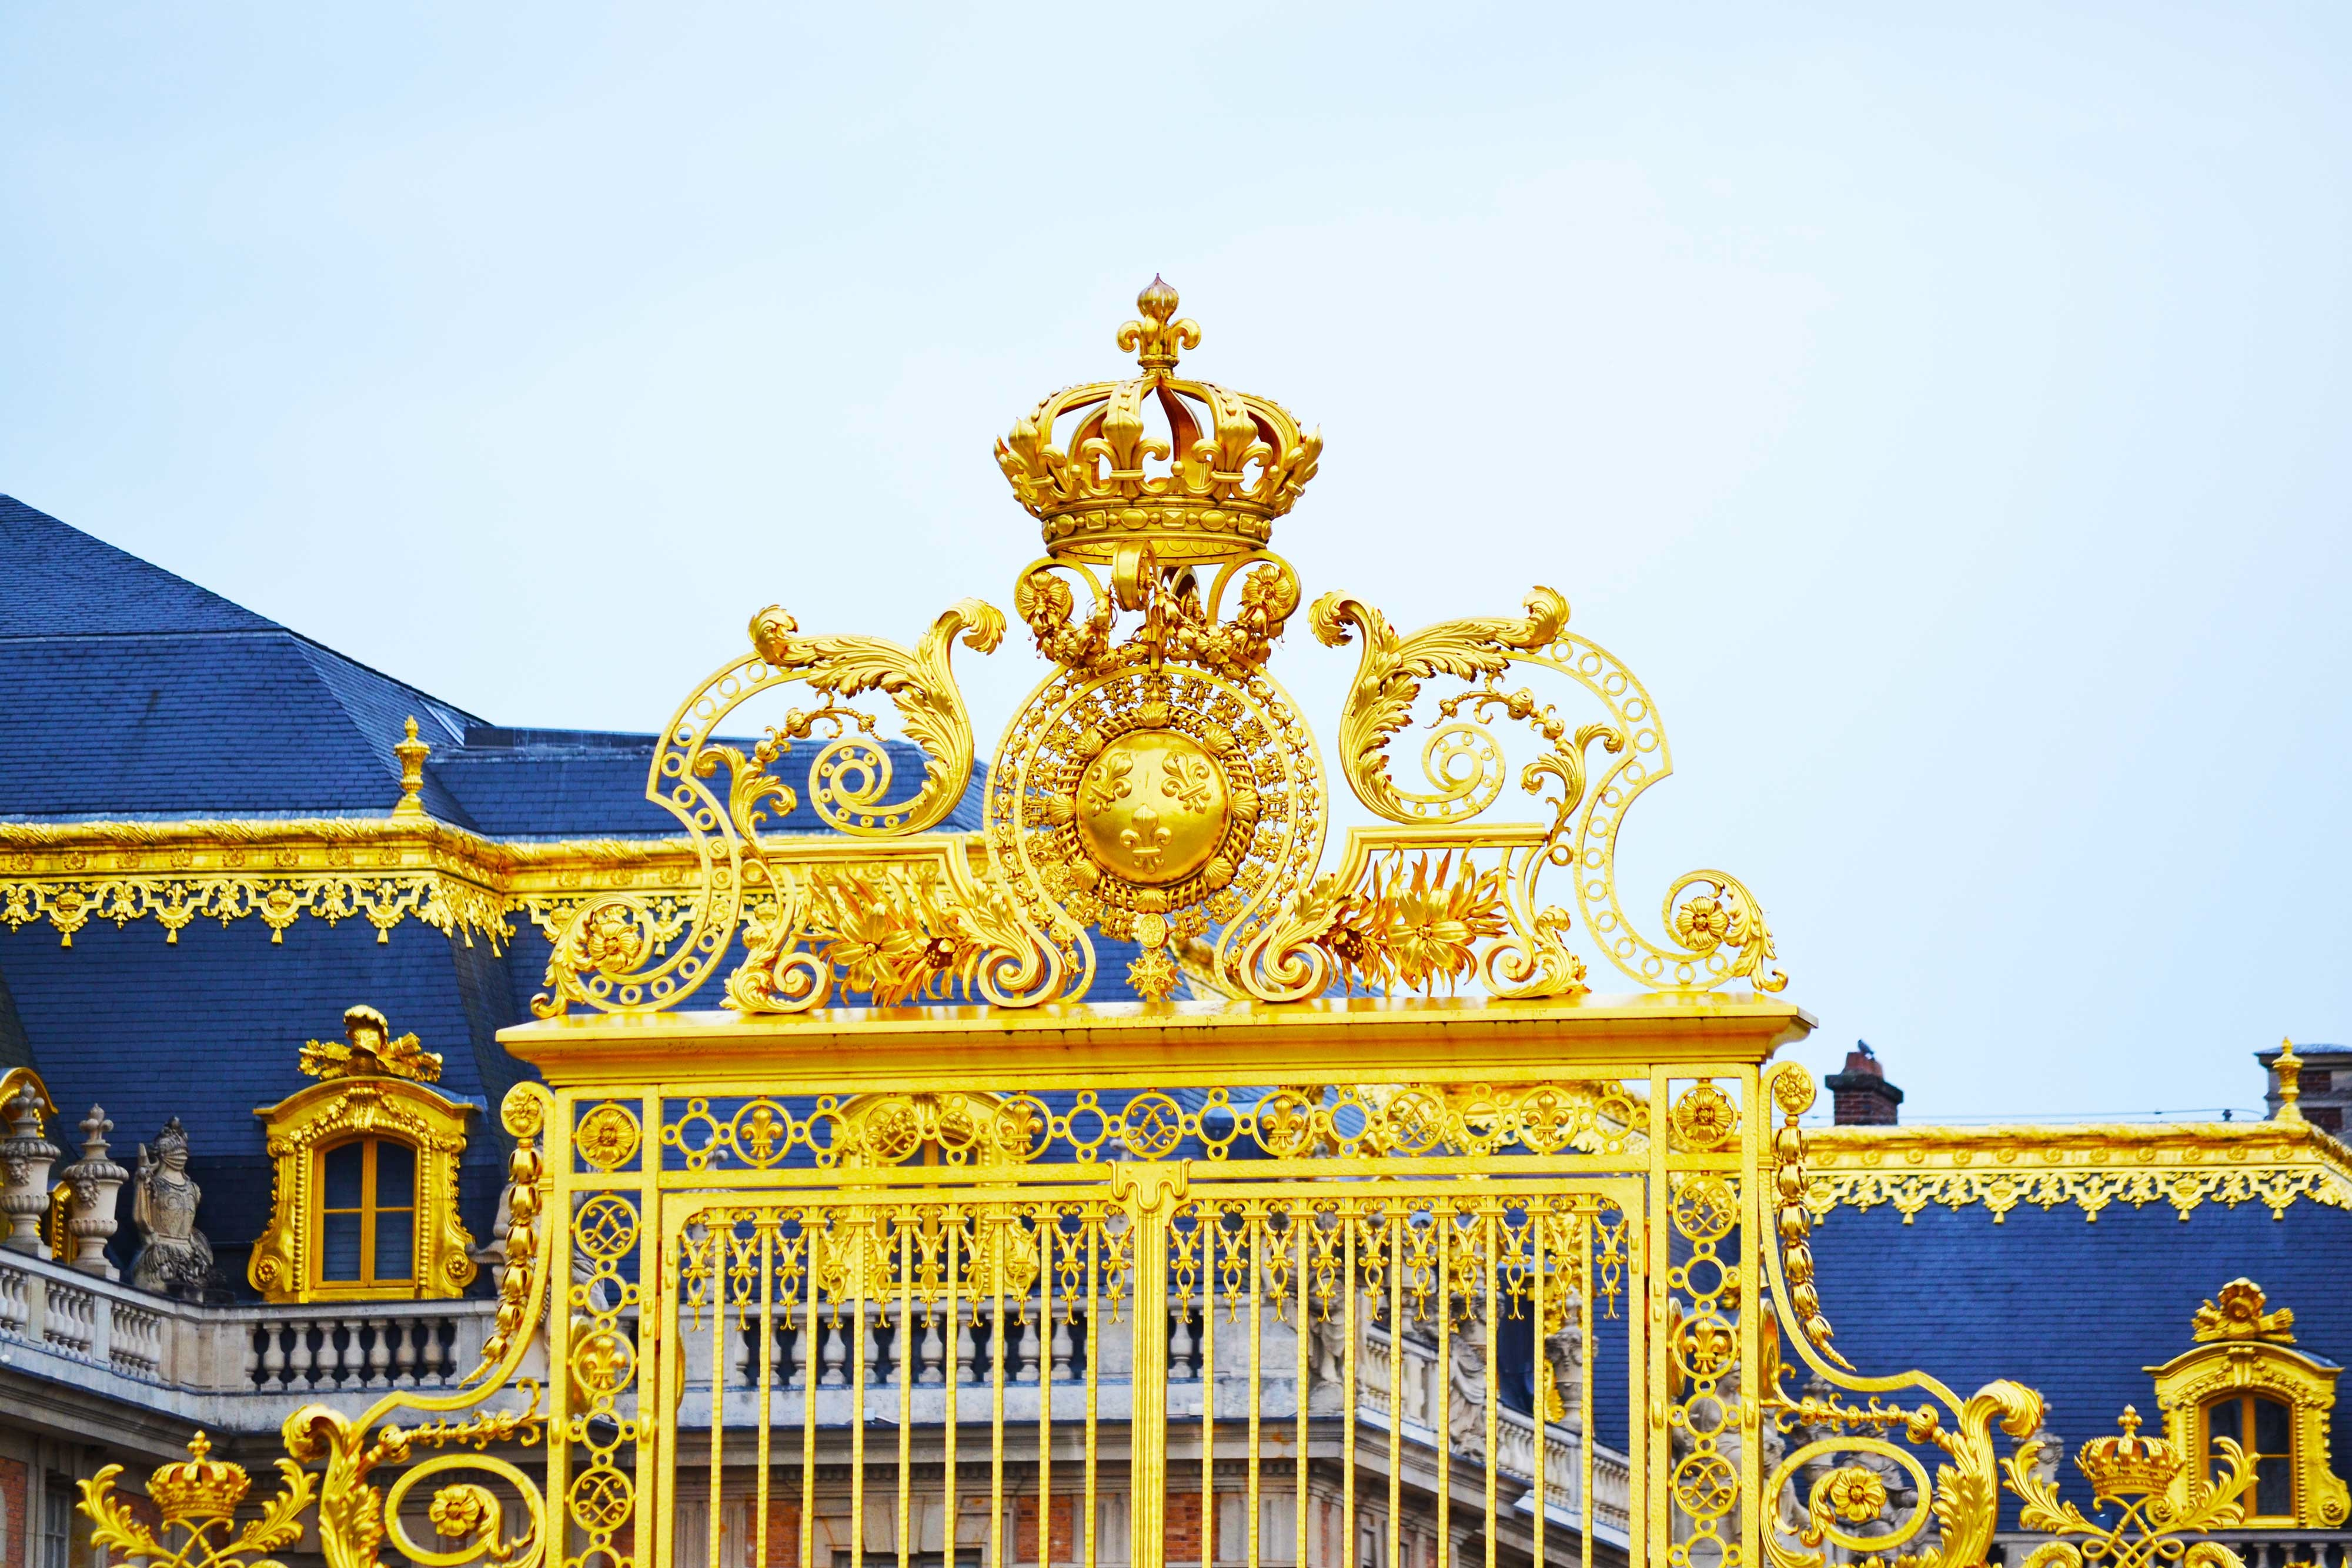 Visiting the Palace of Versailles, France